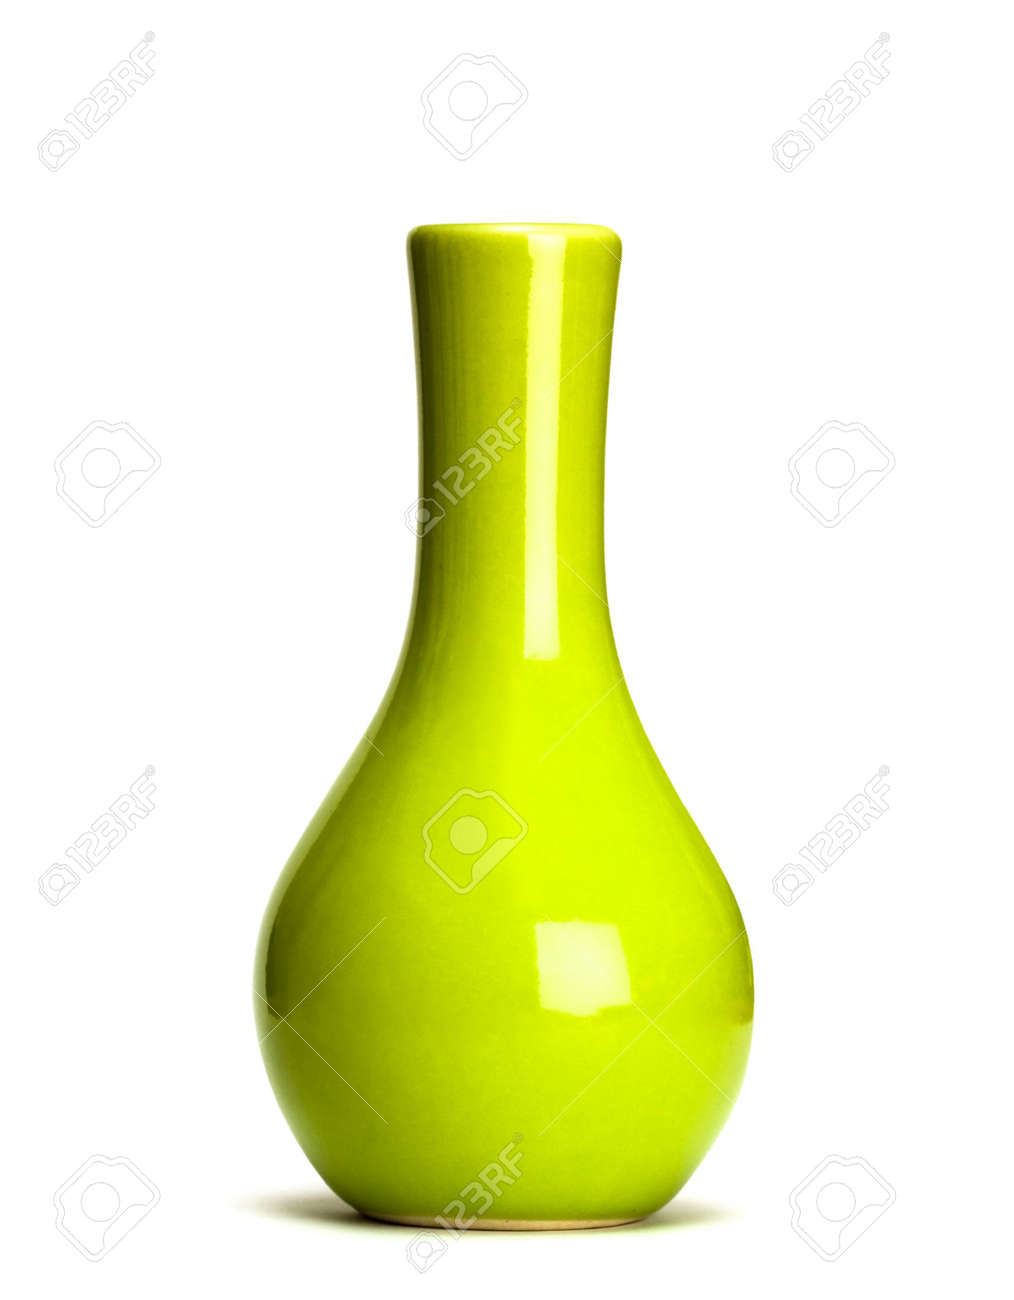 Grüne Vase Stock Photo